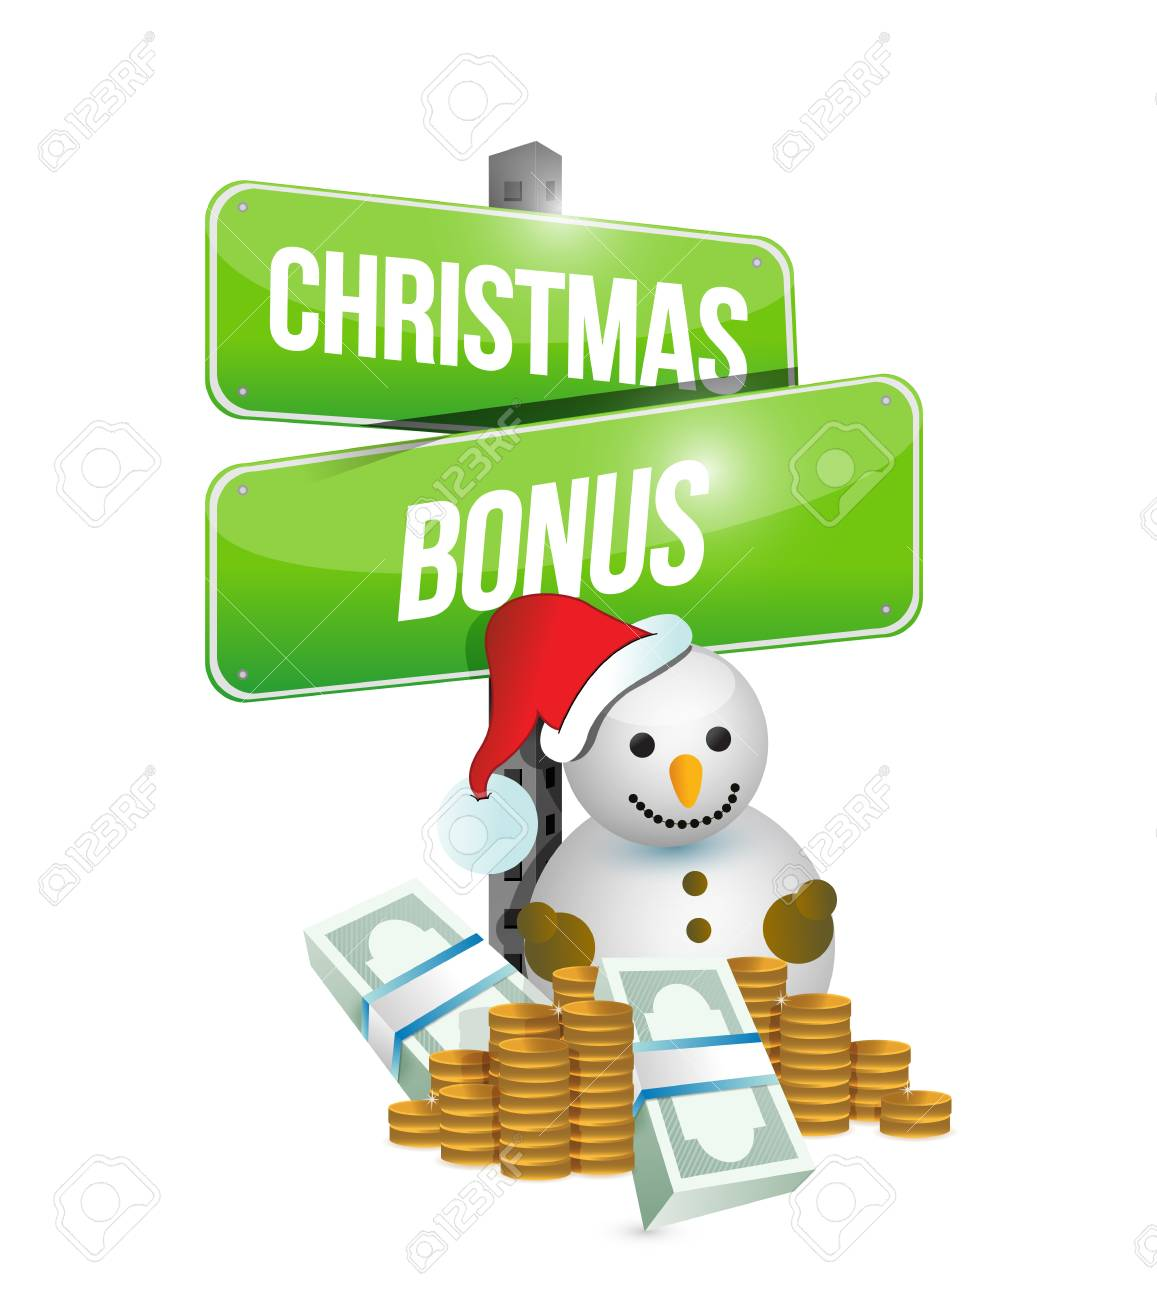 Minister Regina Doherty announces payment of 100% Christmas Bonus to 1.2 million Social Welfare Recipients